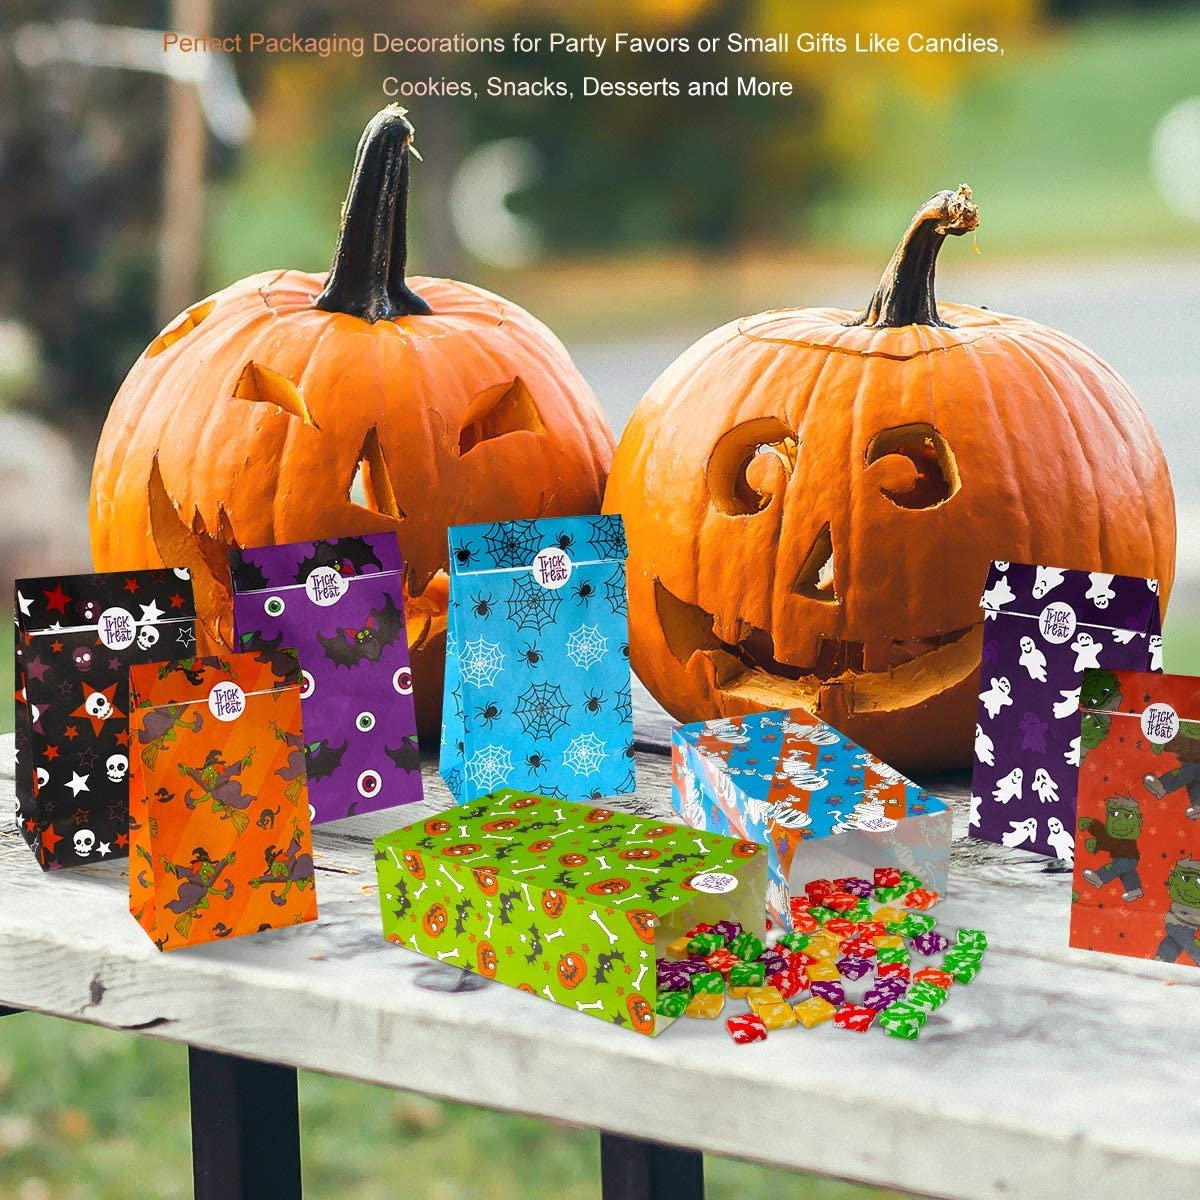 Halloween Treat Bags Candy Gift Bags,Paper Bags with Trick or Treat Stickers Gift Bags, 8 Assorted Designs 72 Pack